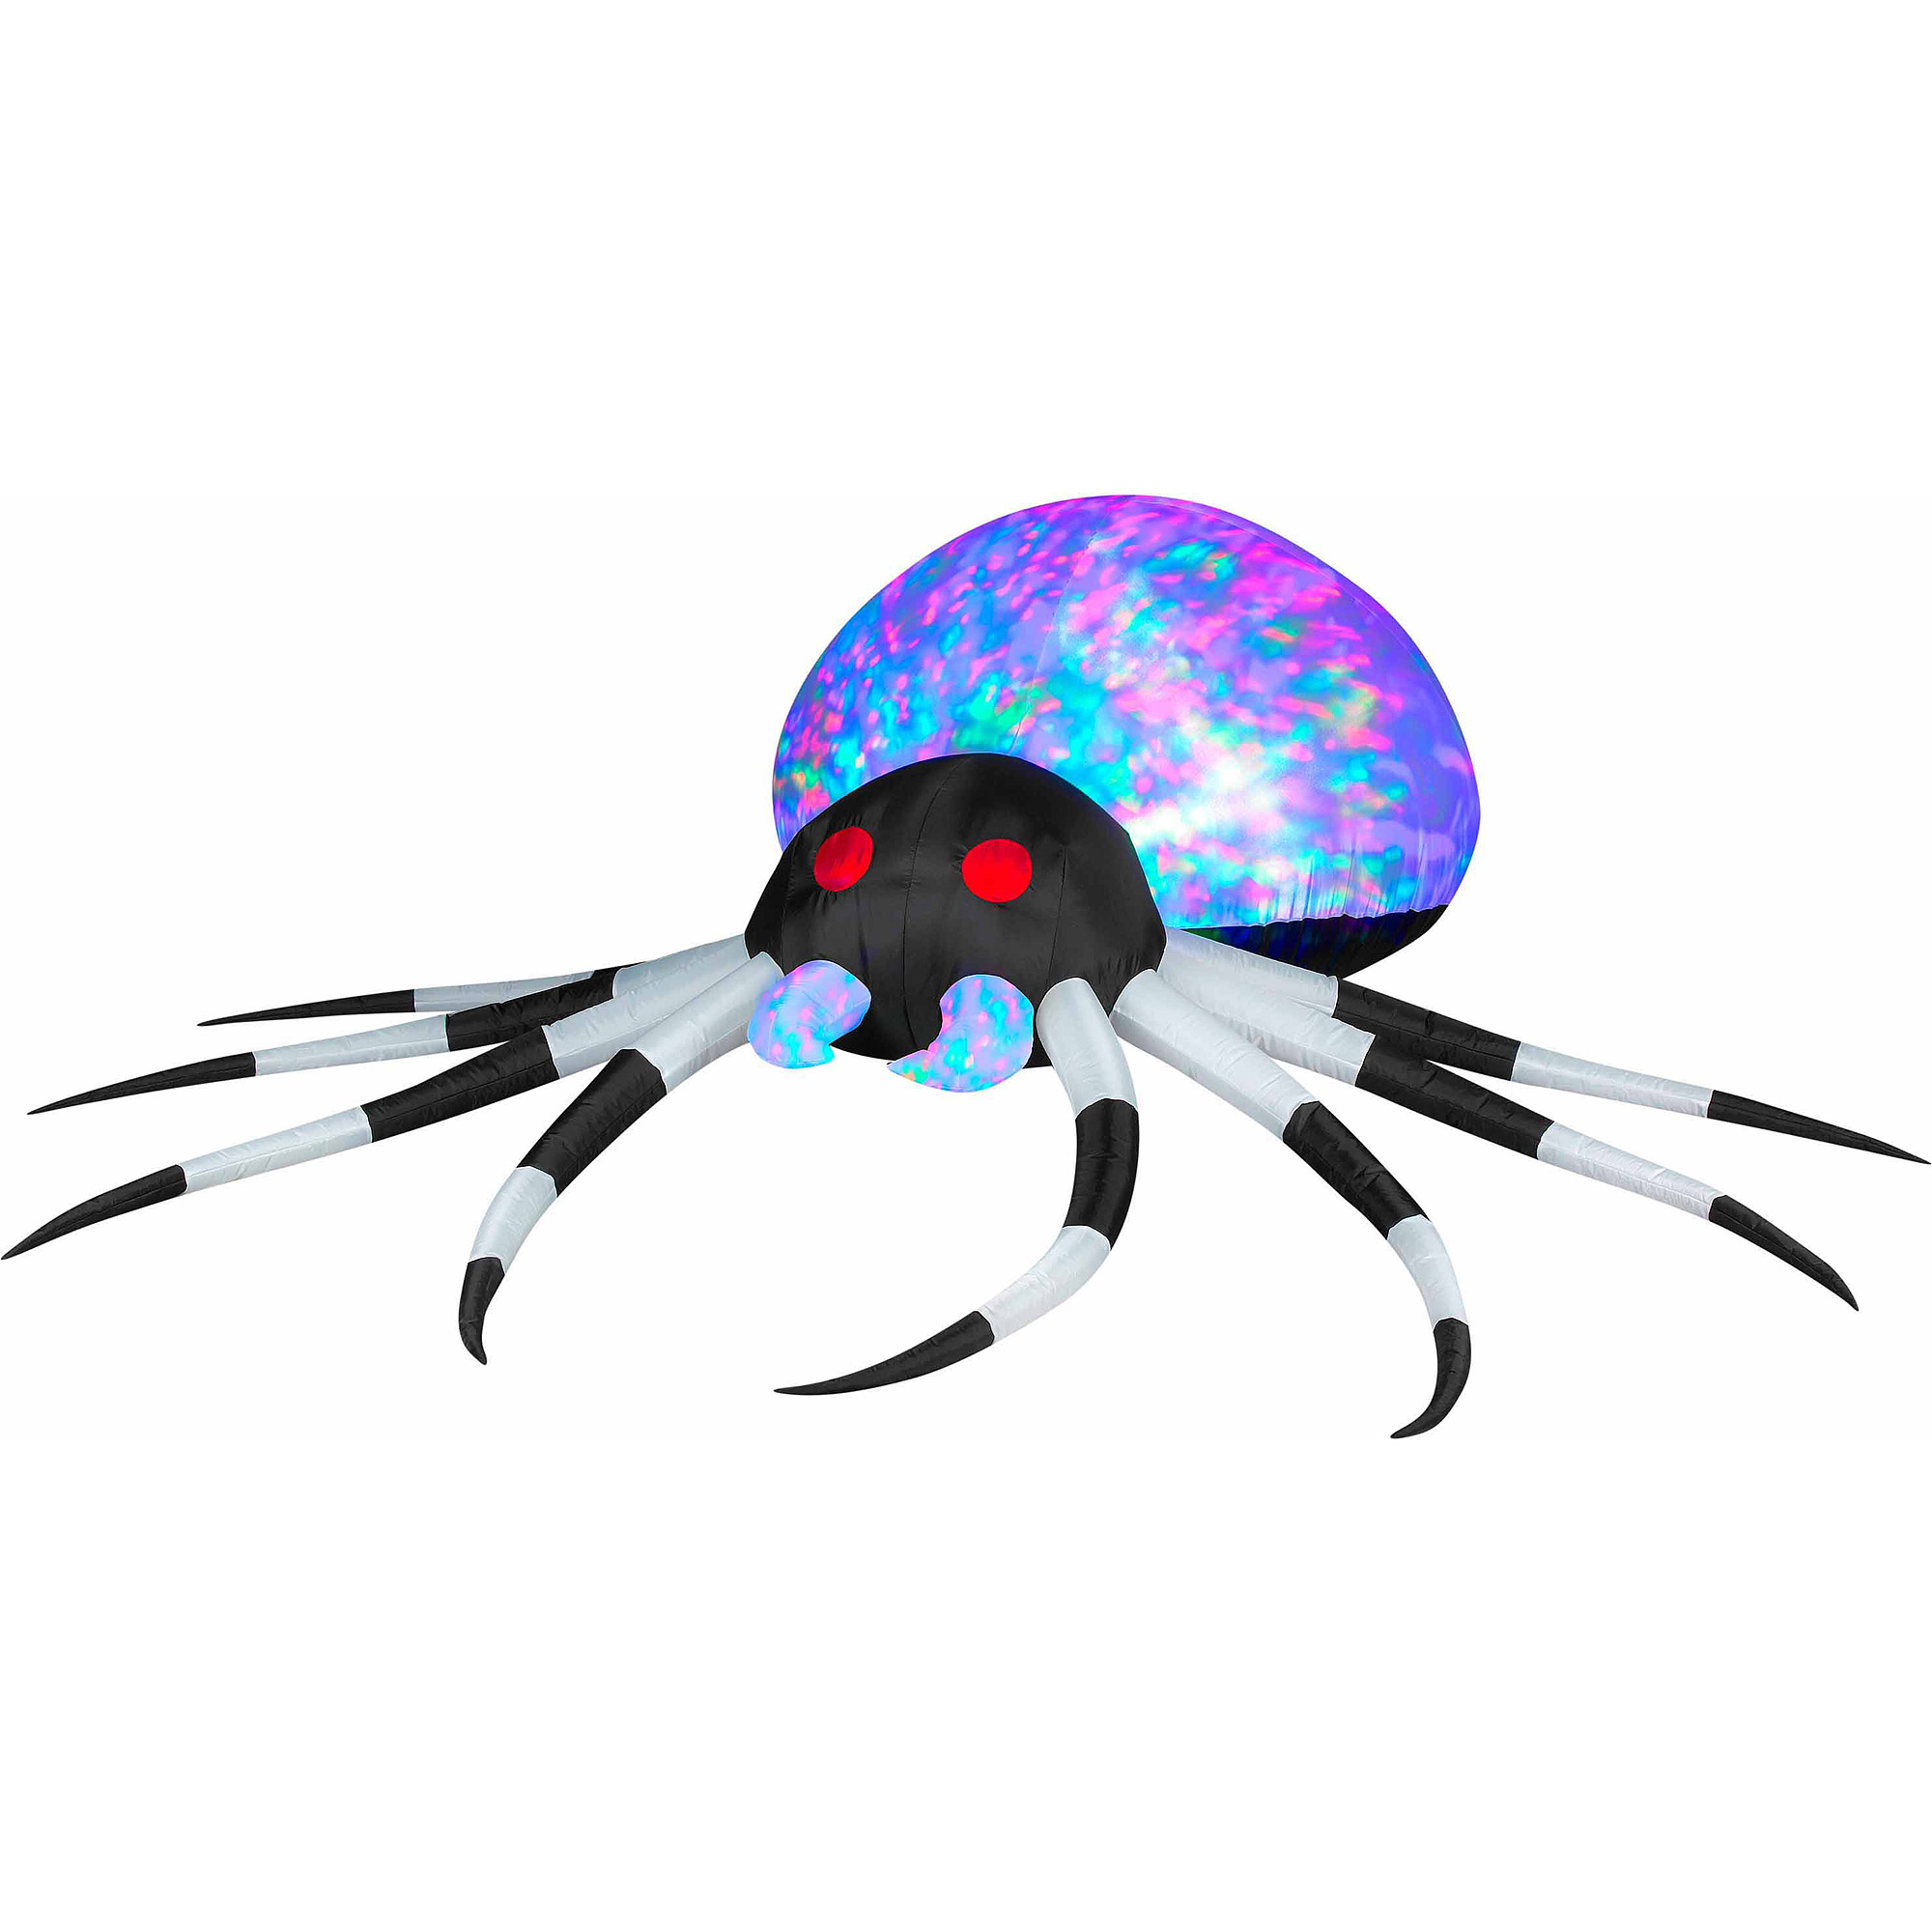 3' Projection Airblown Inflatables Kaleidoscope Black/White Spider Halloween Decoration